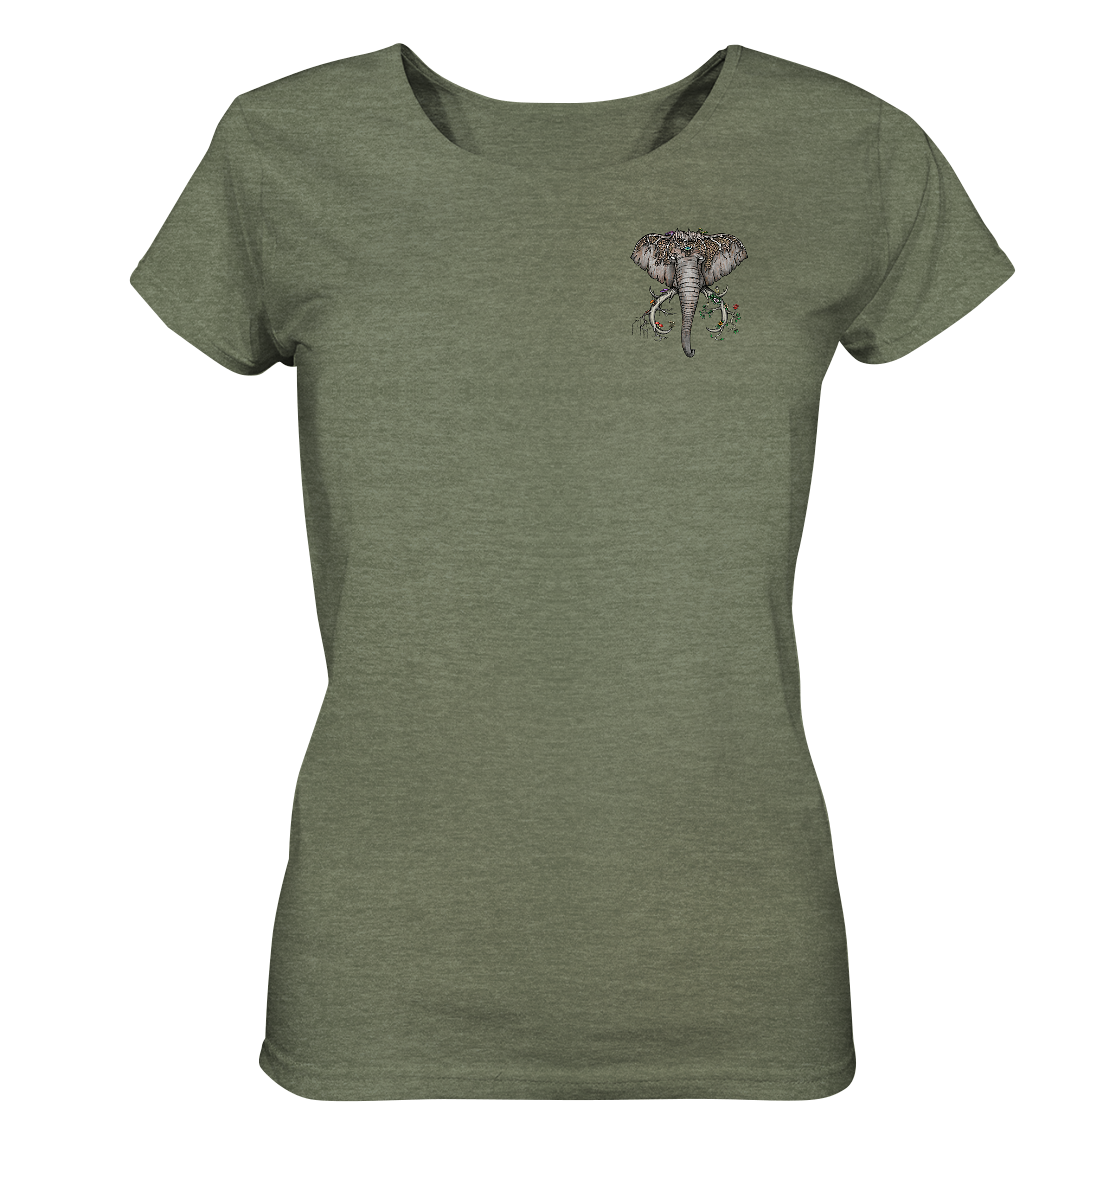 front-ladies-organic-shirt-meliert-616b52-1116x-2.png